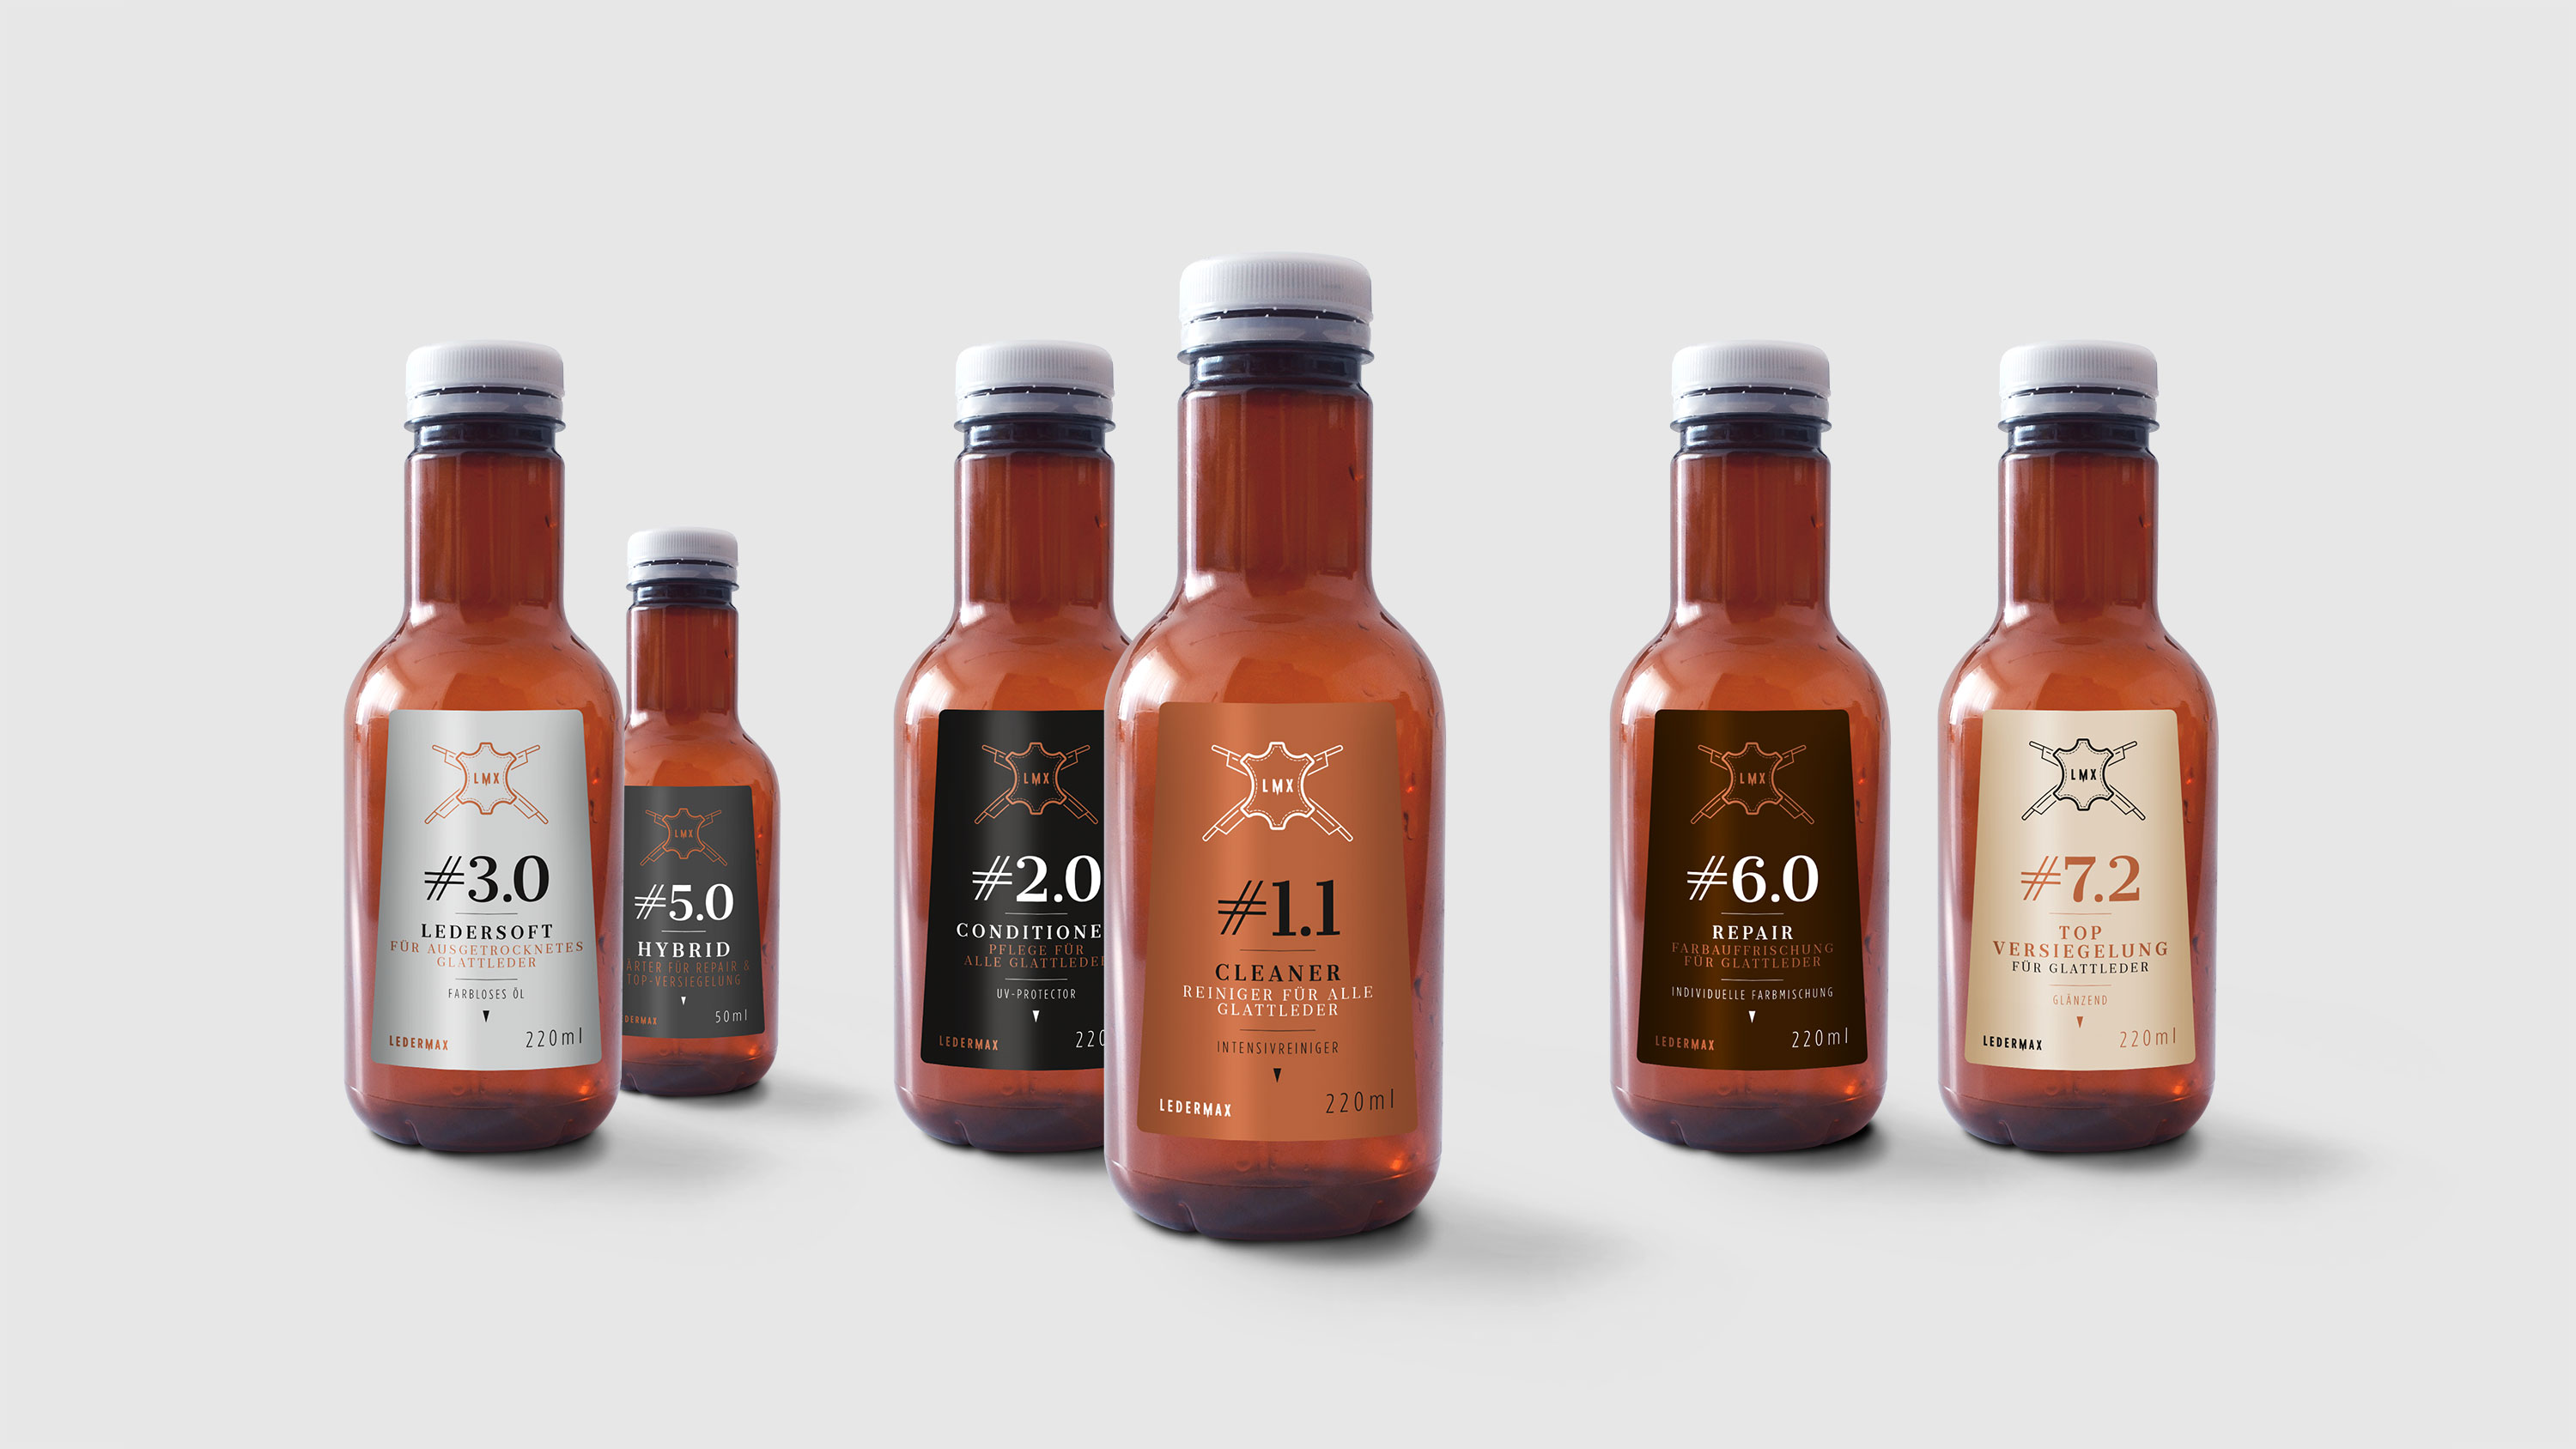 Ledermax / Corporate Design / Packaging / Web